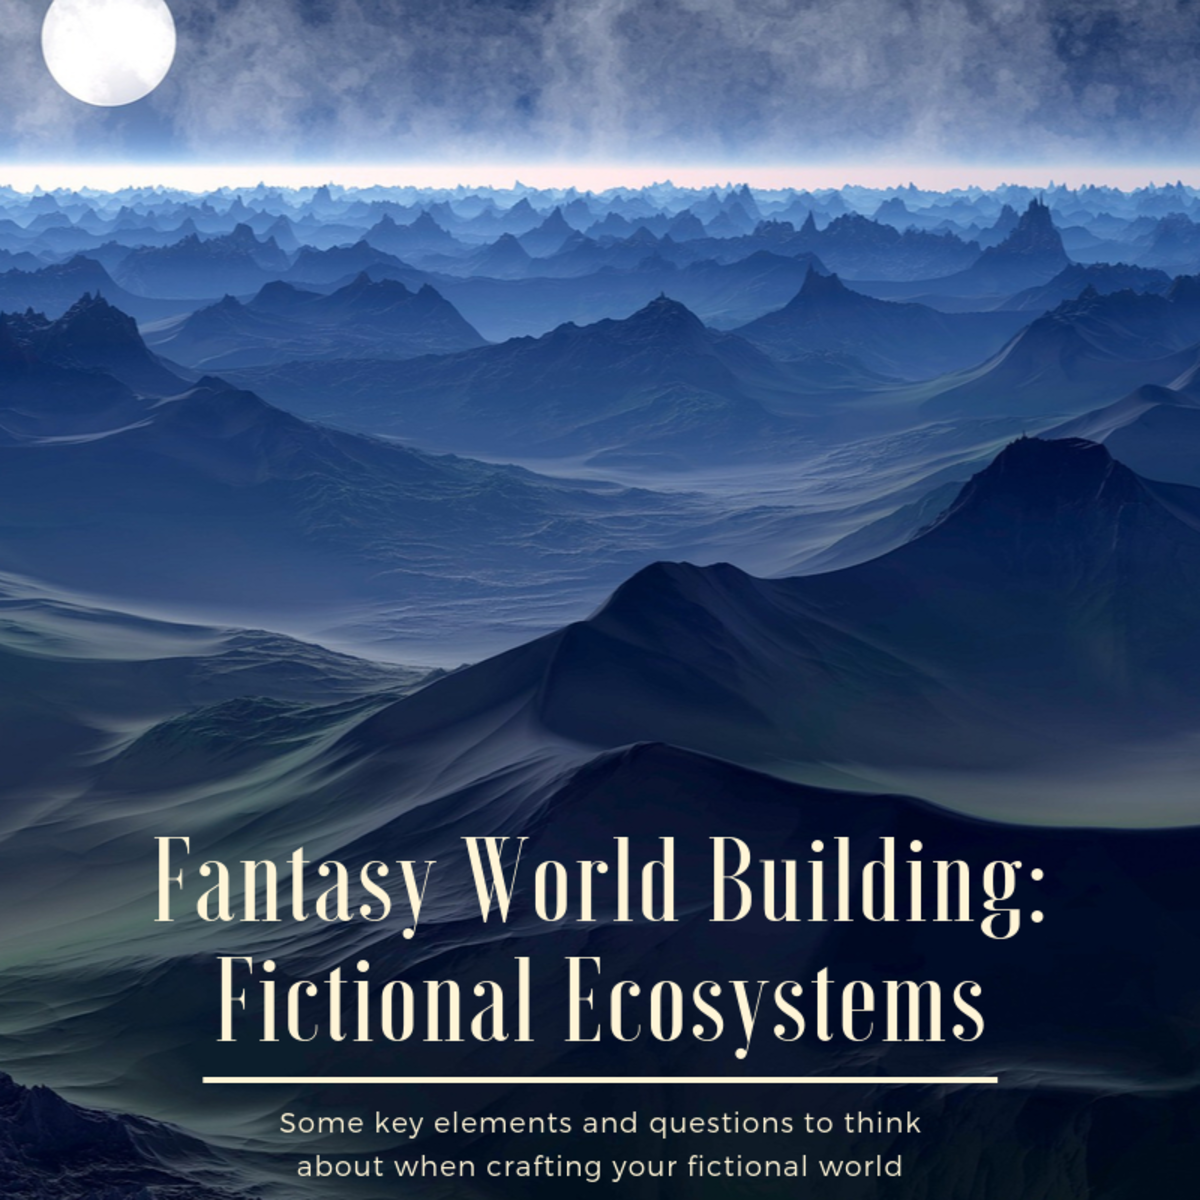 This article will provide some guidance and food for thought for you to consider when crafting the ecosystem of your fantasy world.